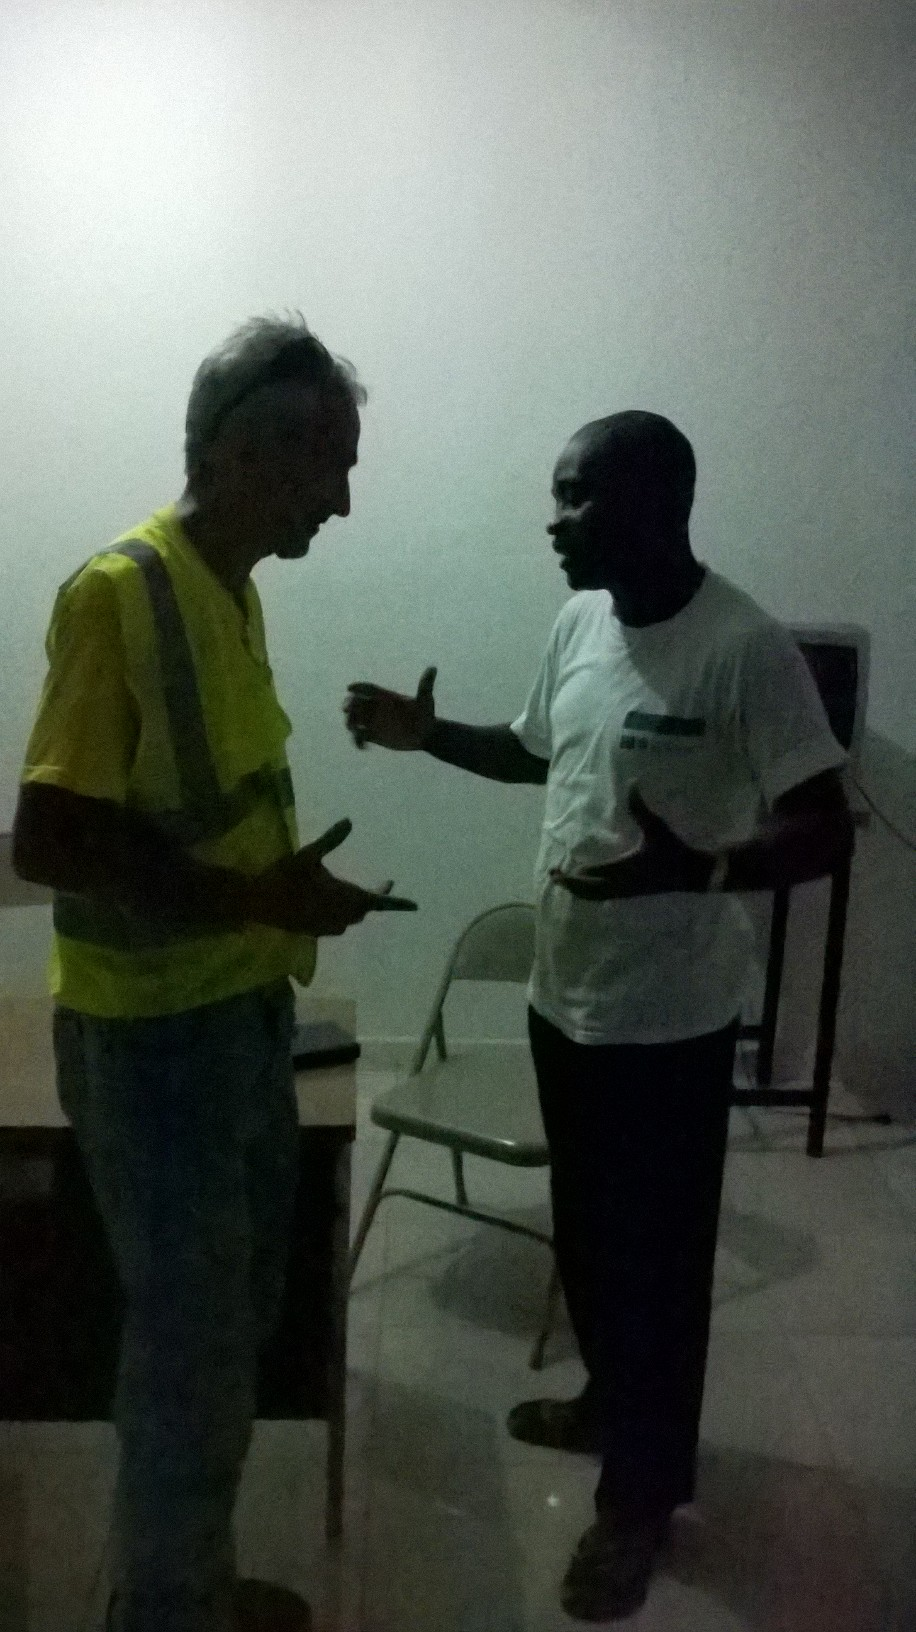 Dr_Lamartine_Pierre_Fils_director_of_the_State_Health_Center_of_ANSES_a_PITRES_and_Dr_Large_discussing_Eye_Care_2015_aug_21_WP_20150821_010.jpg